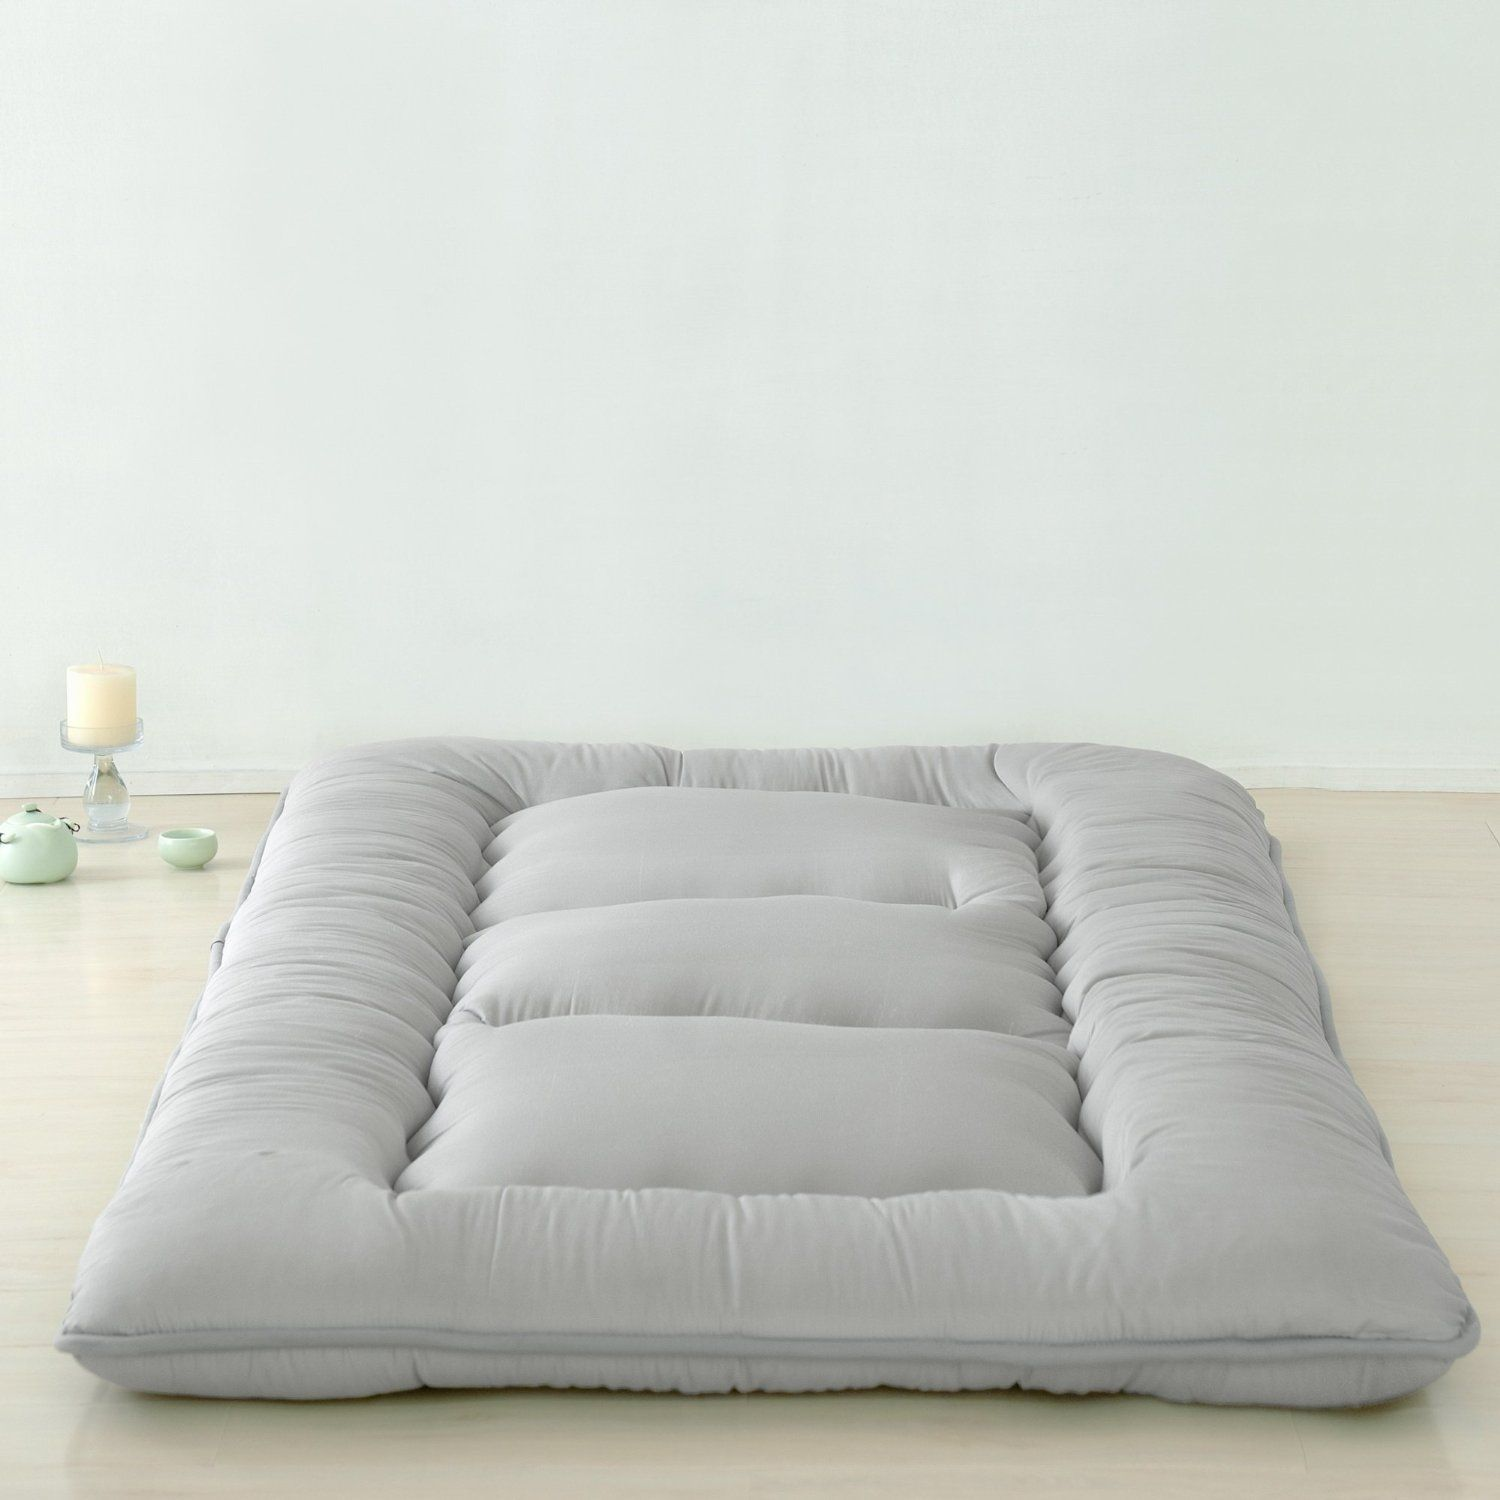 quality of with mardo mattresses mak hub softness its mattress futon